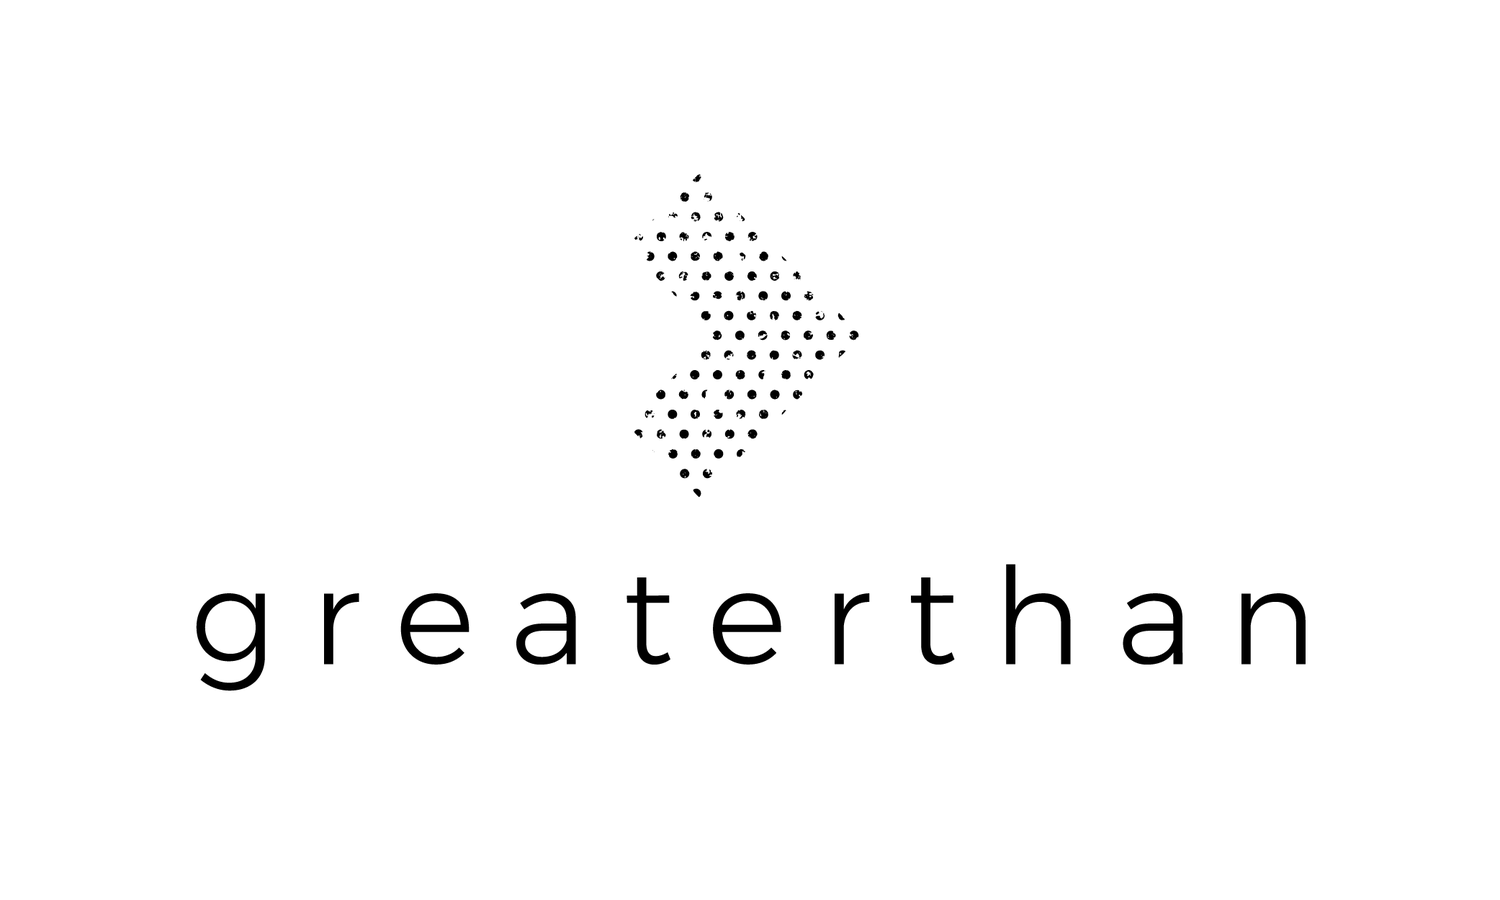 Greaterthan